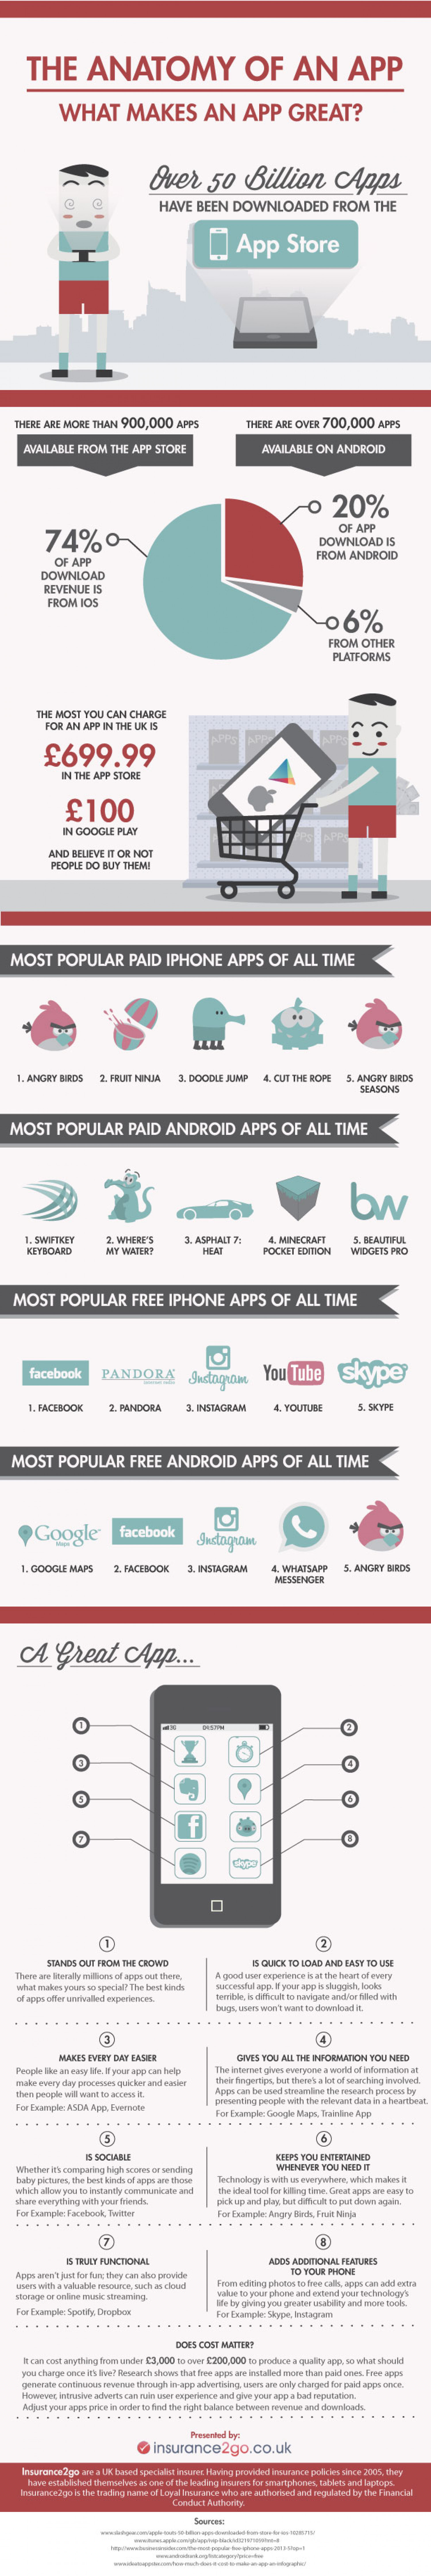 The Anatomy Of An App Infographic